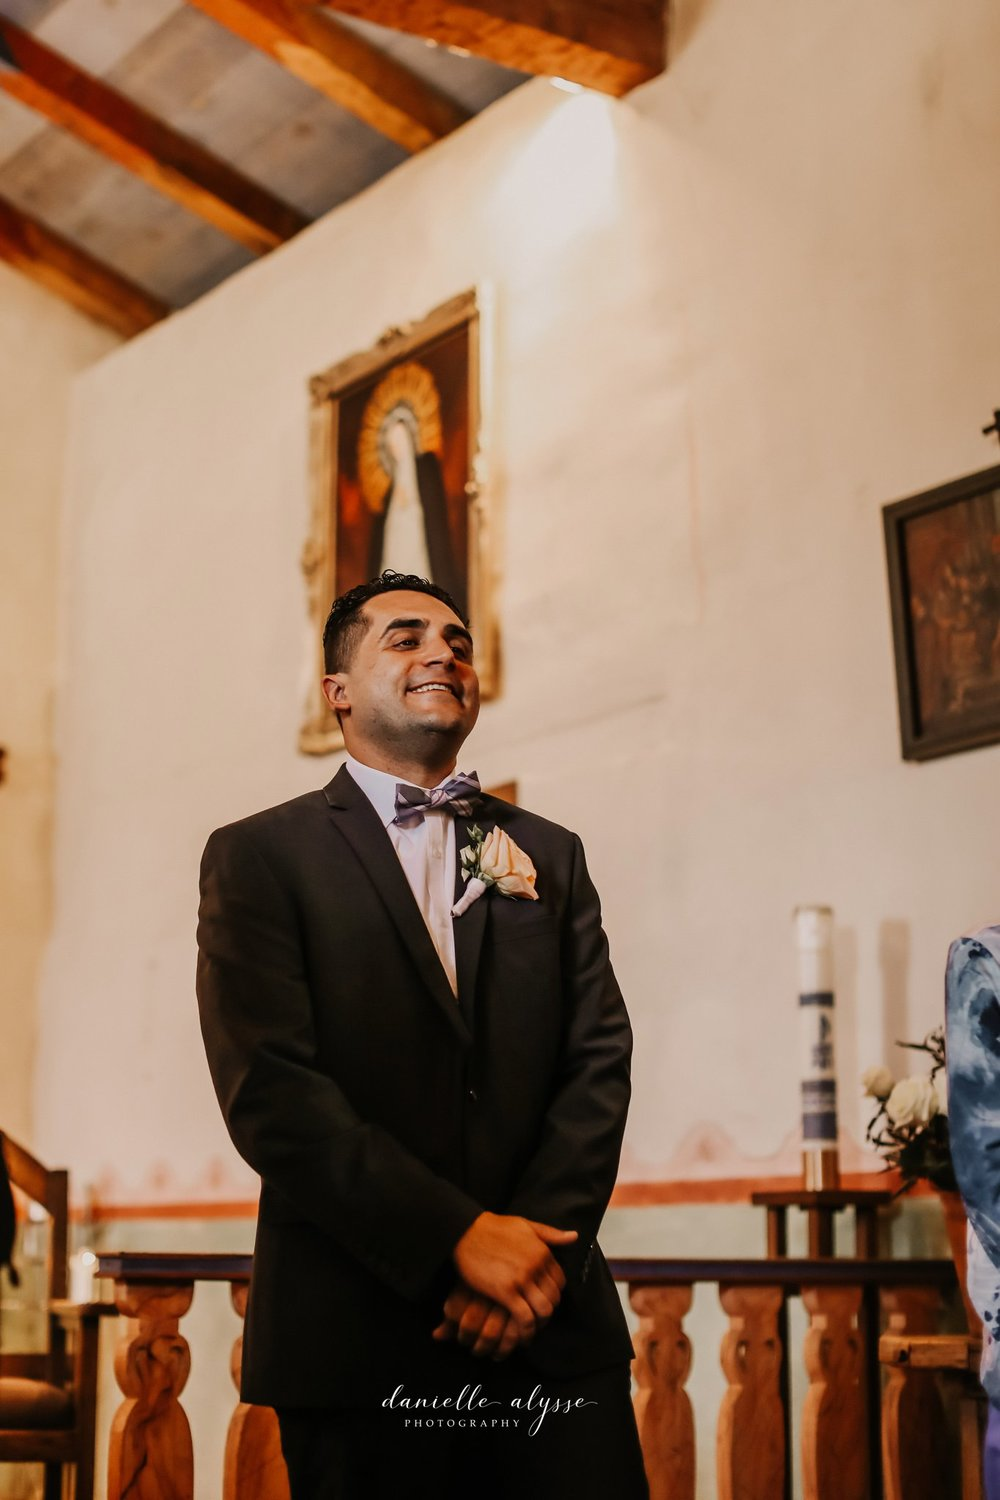 180630_wedding_lily_ryan_mission_soledad_california_danielle_alysse_photography_blog_373_WEB.jpg